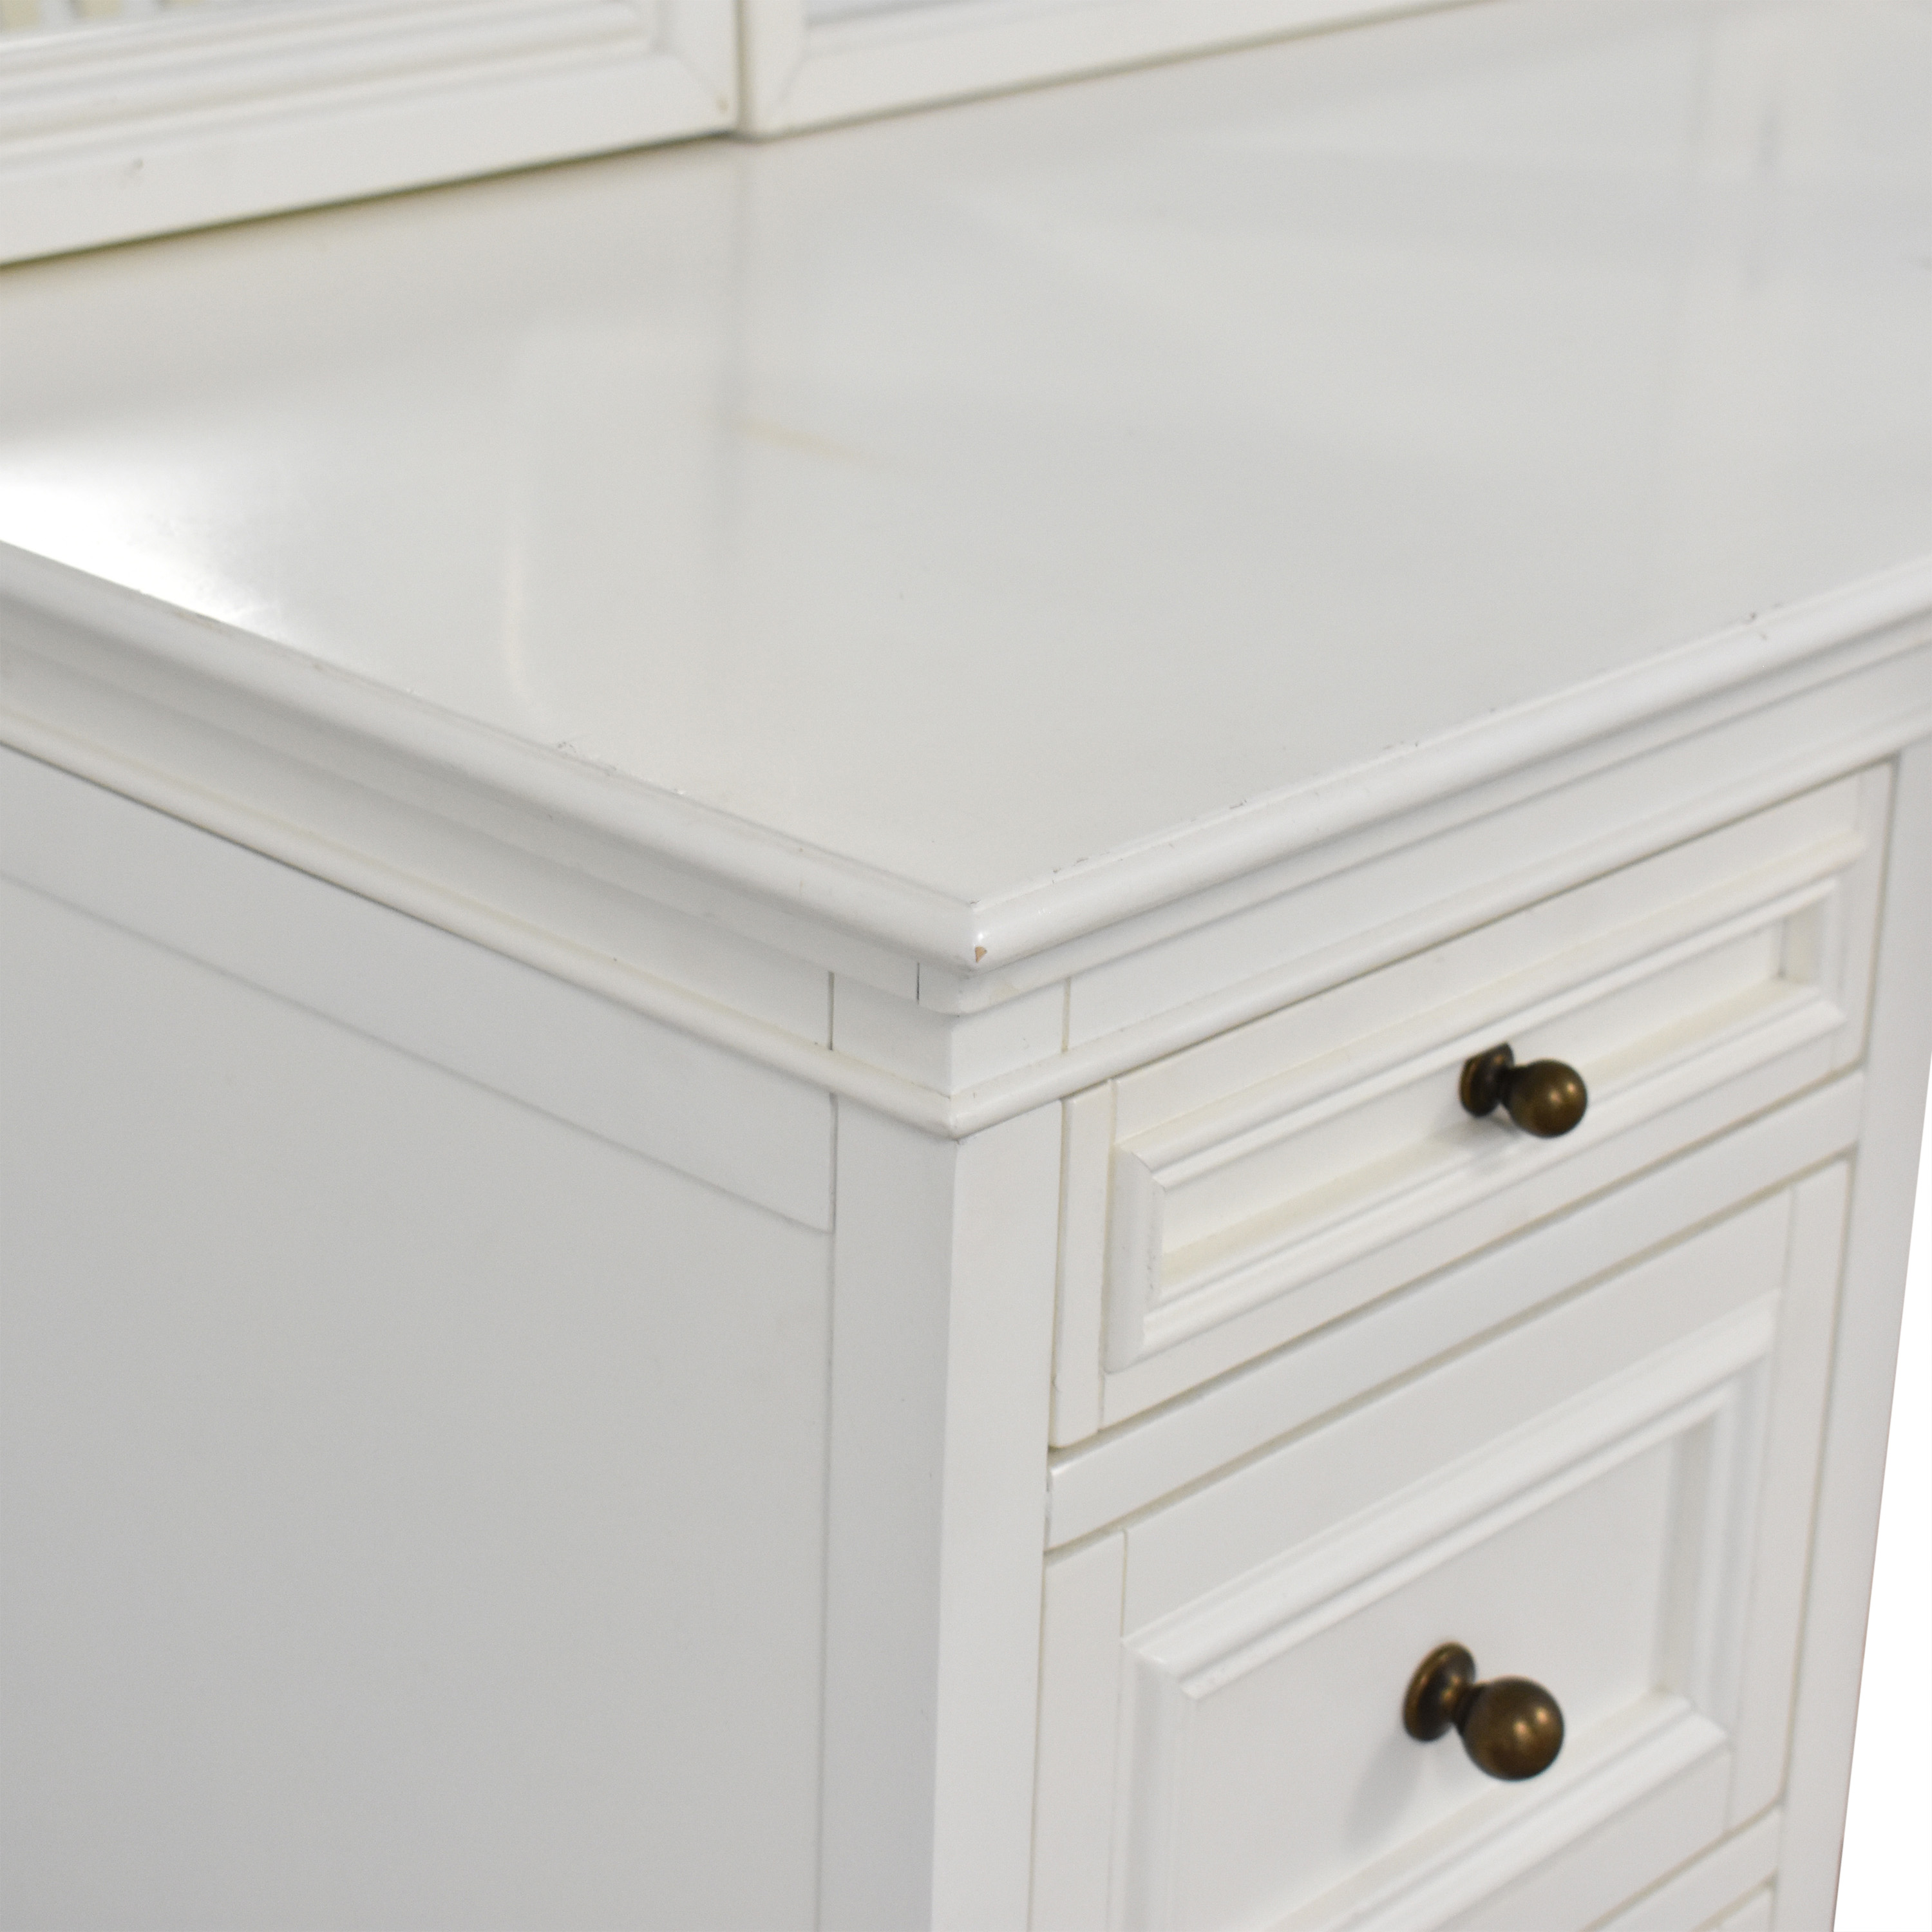 Pottery Barn Pottery Barn Chelsea Vanity Desk with Chair dimensions